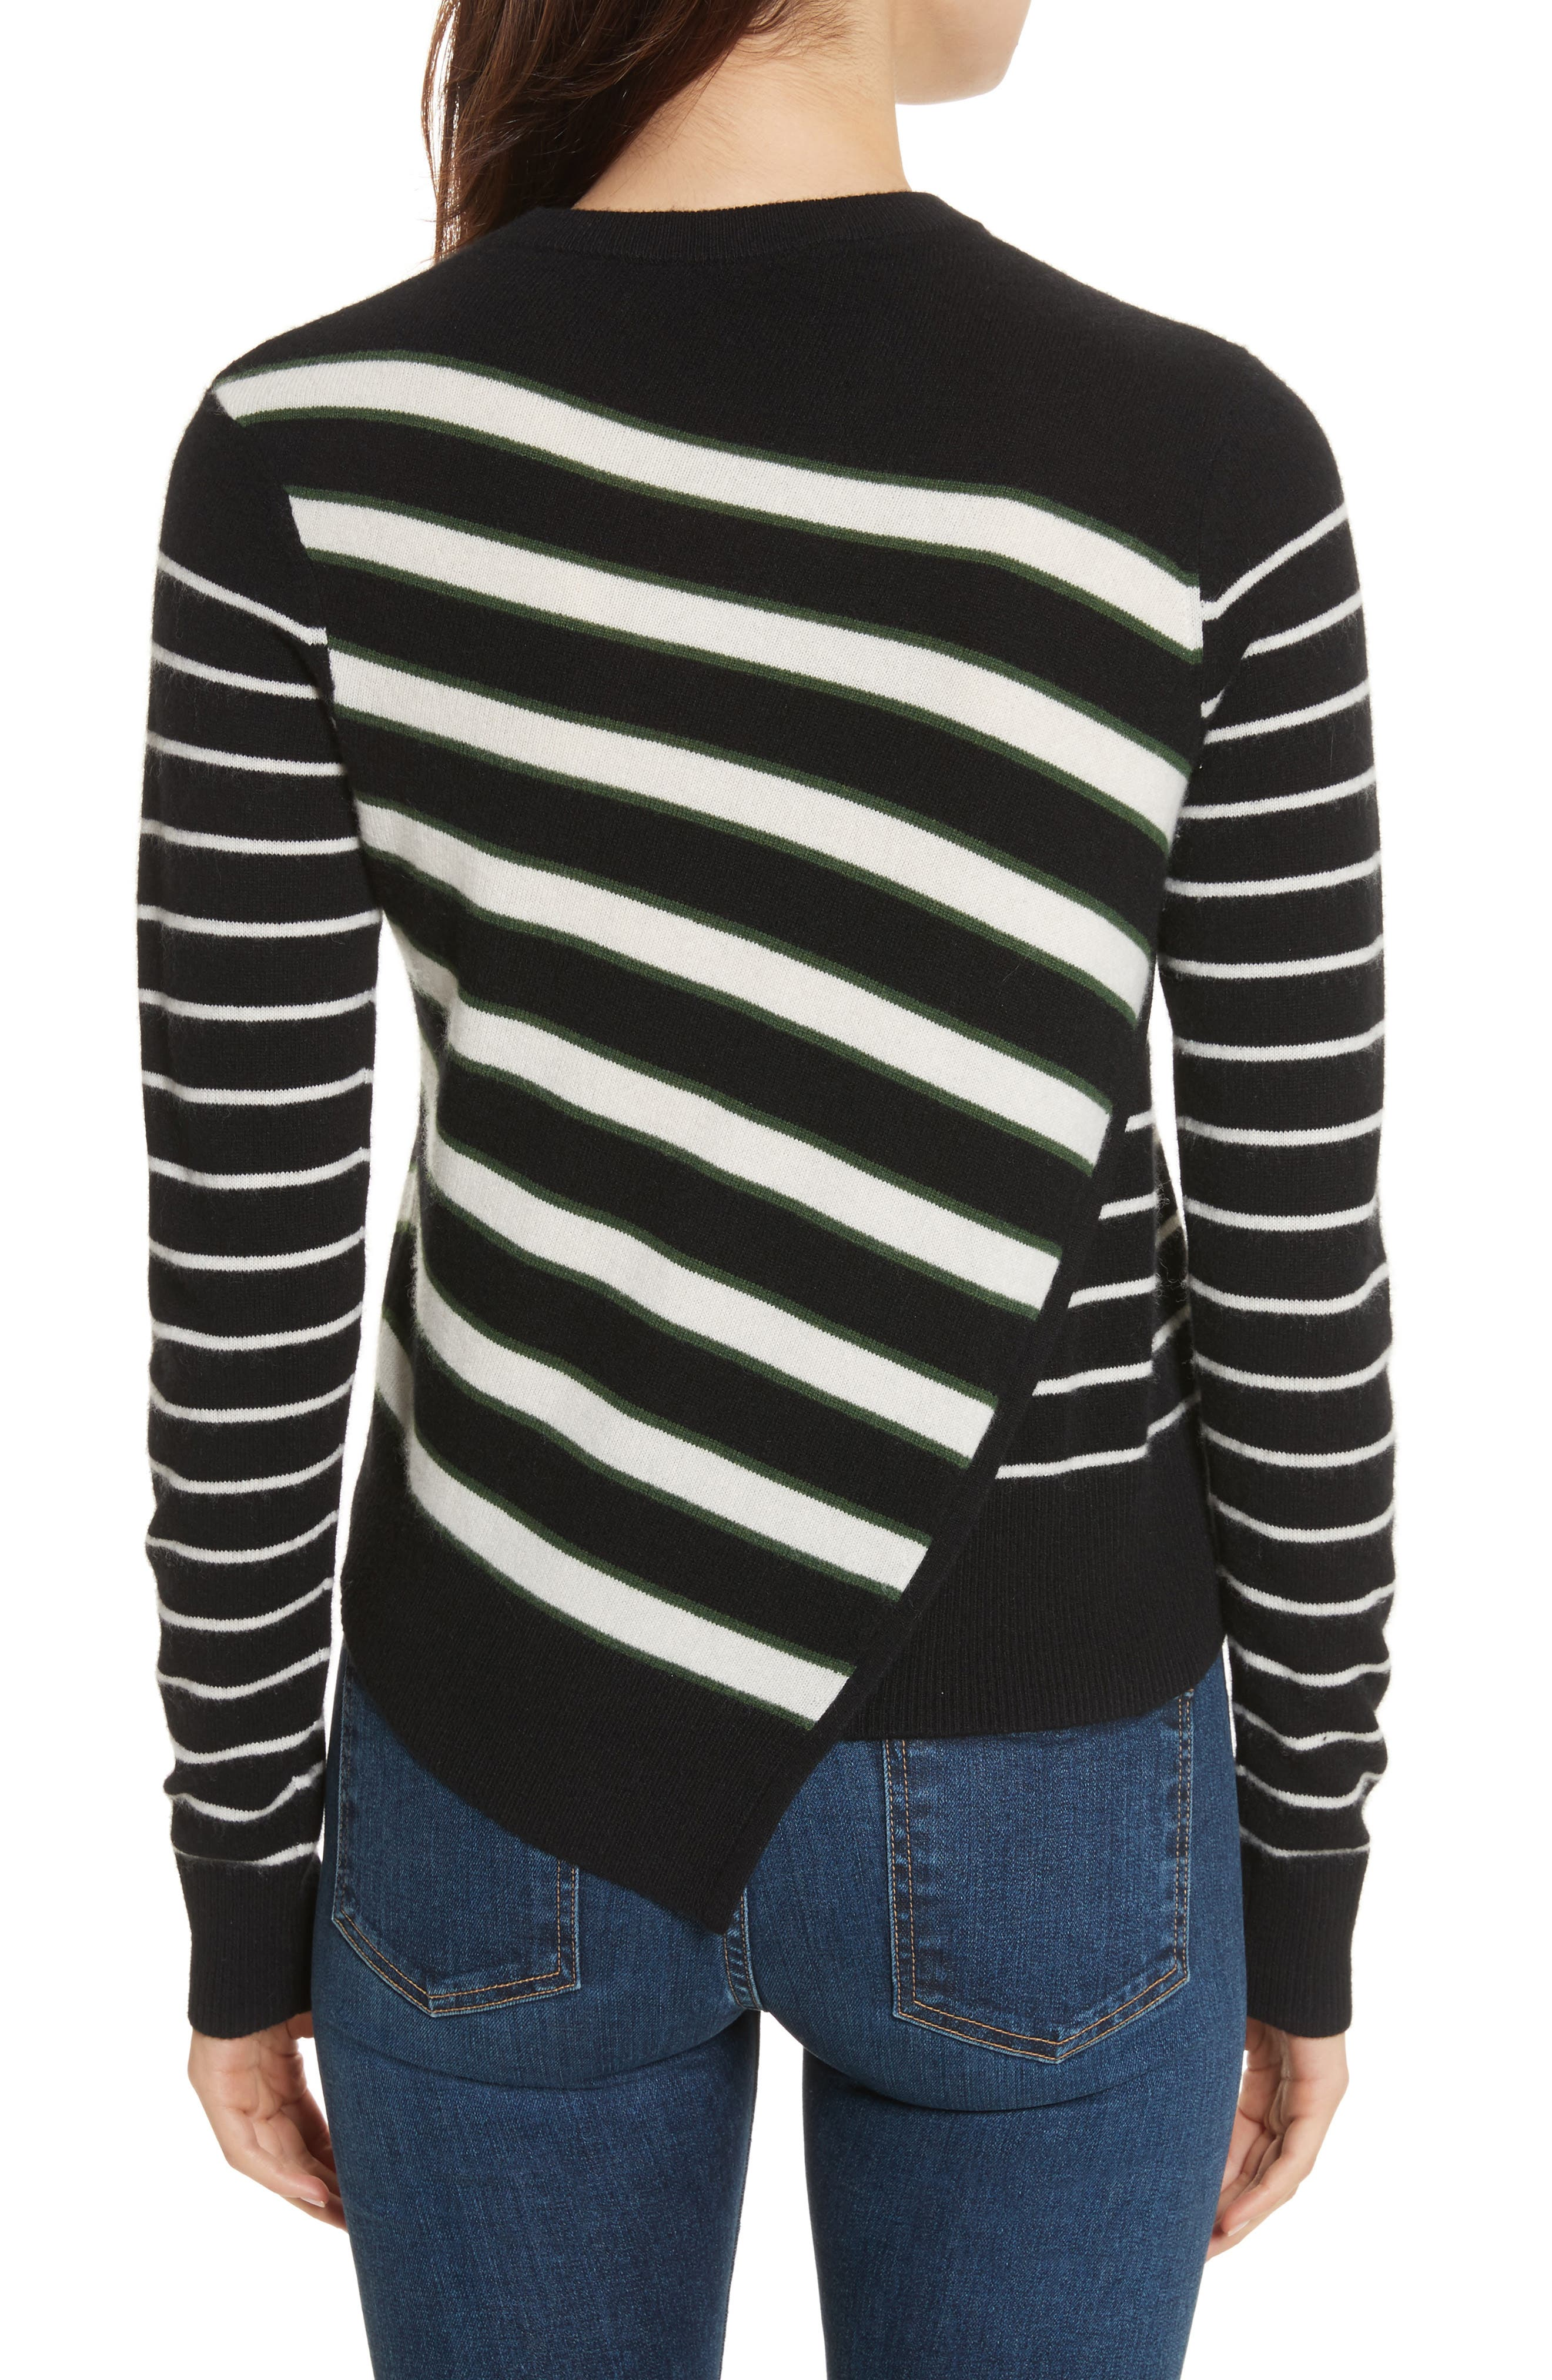 Pepper Cashmere Sweater,                             Alternate thumbnail 2, color,                             007